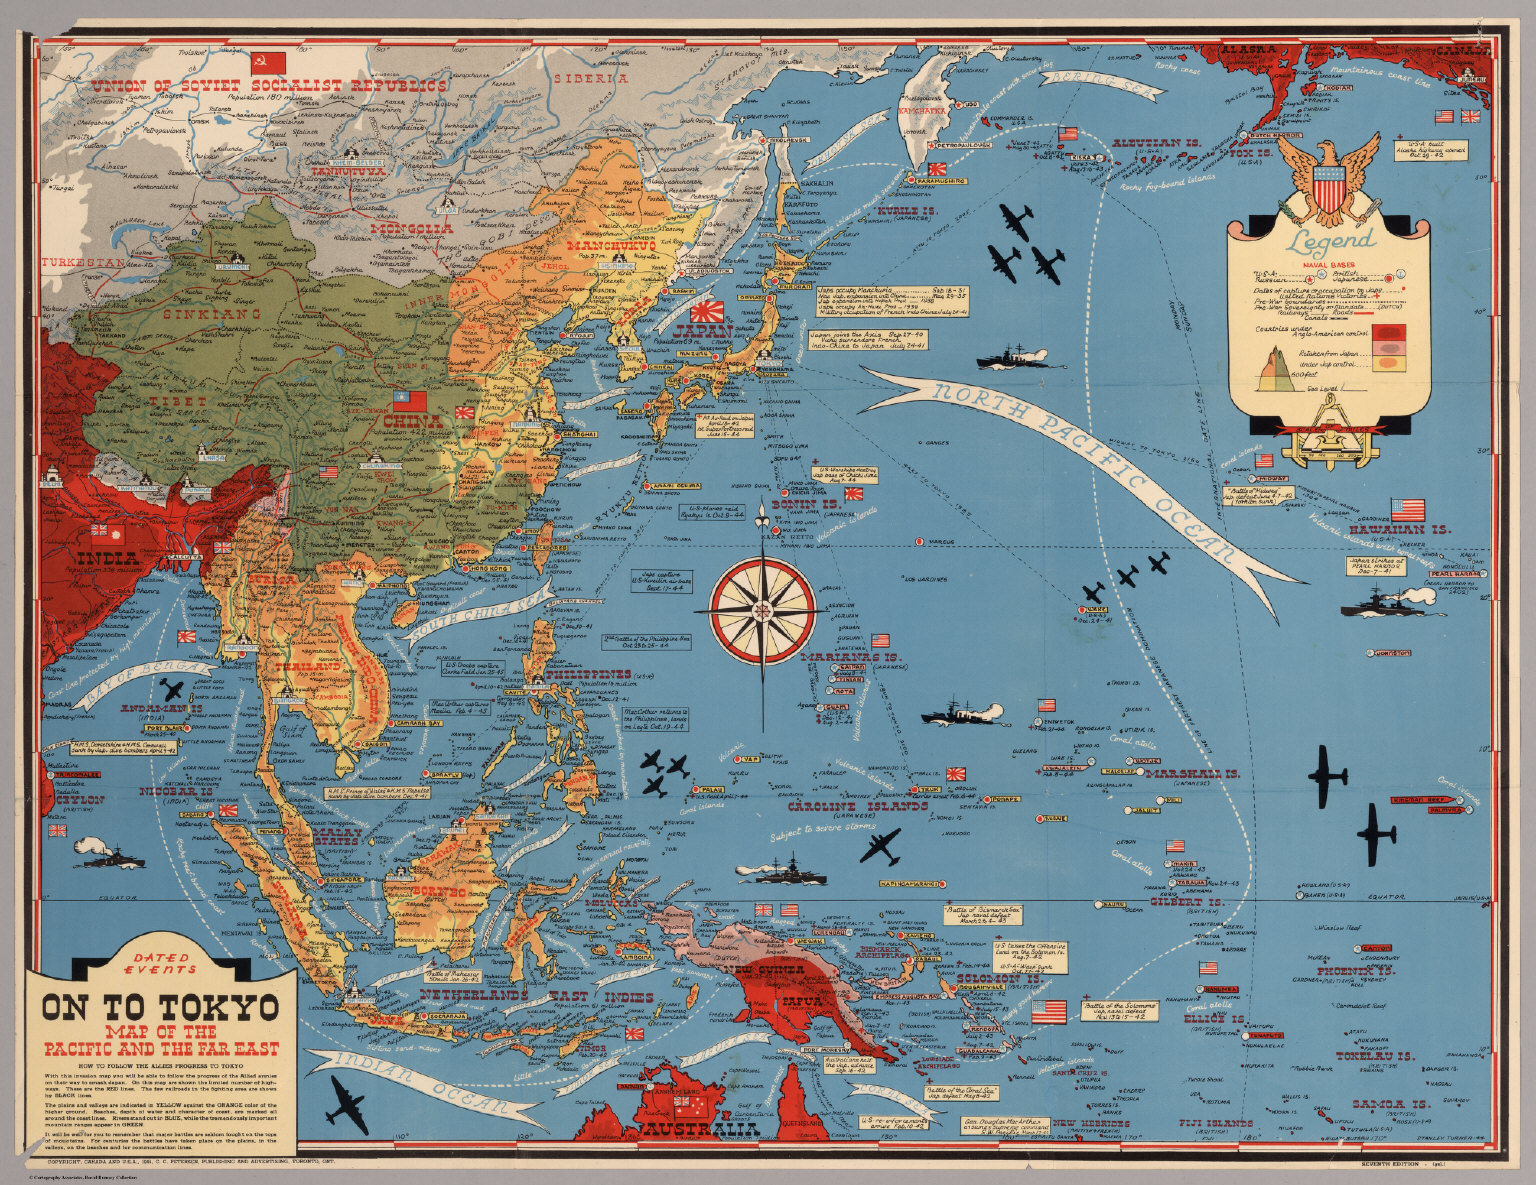 Dated Events On To Tokyo Map of the Pacific and the Far East